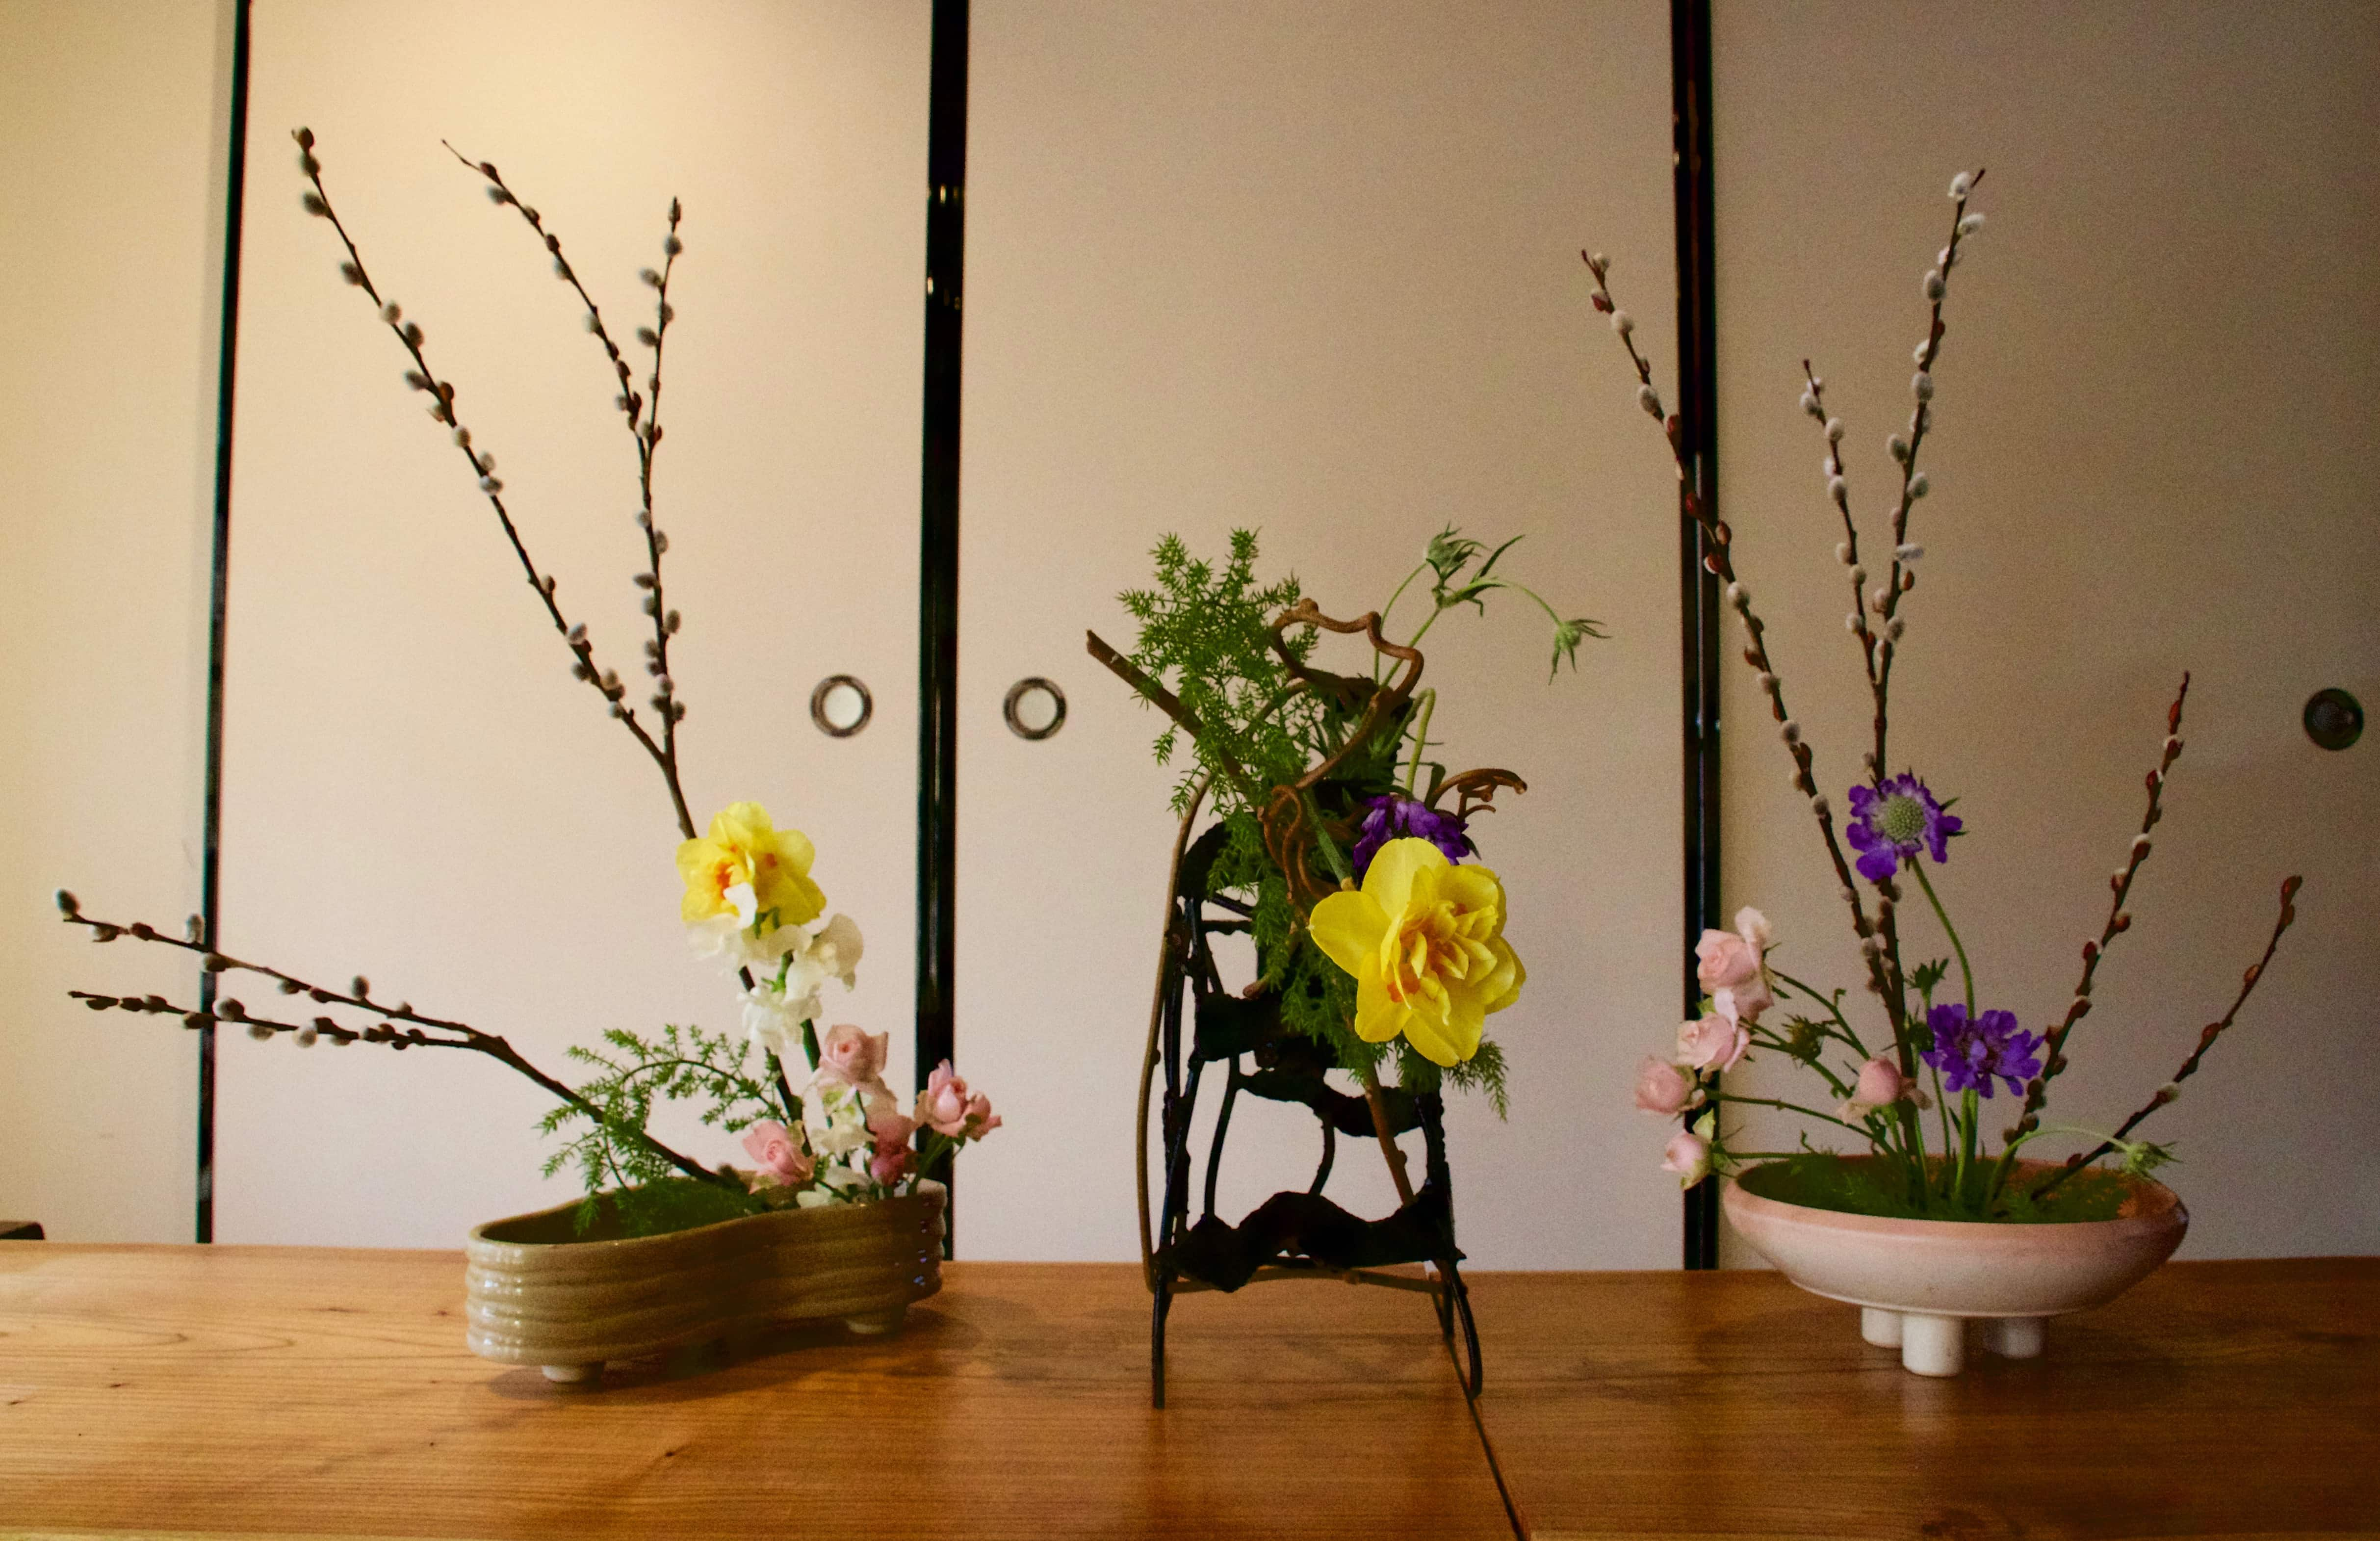 If you're looking for a cultural experience in Japan, stay at Guesthouse Mado. Wear a kimono and learn the art of Ikebana with the most kind hosts! Read more at www.thefivefoottraveler.com